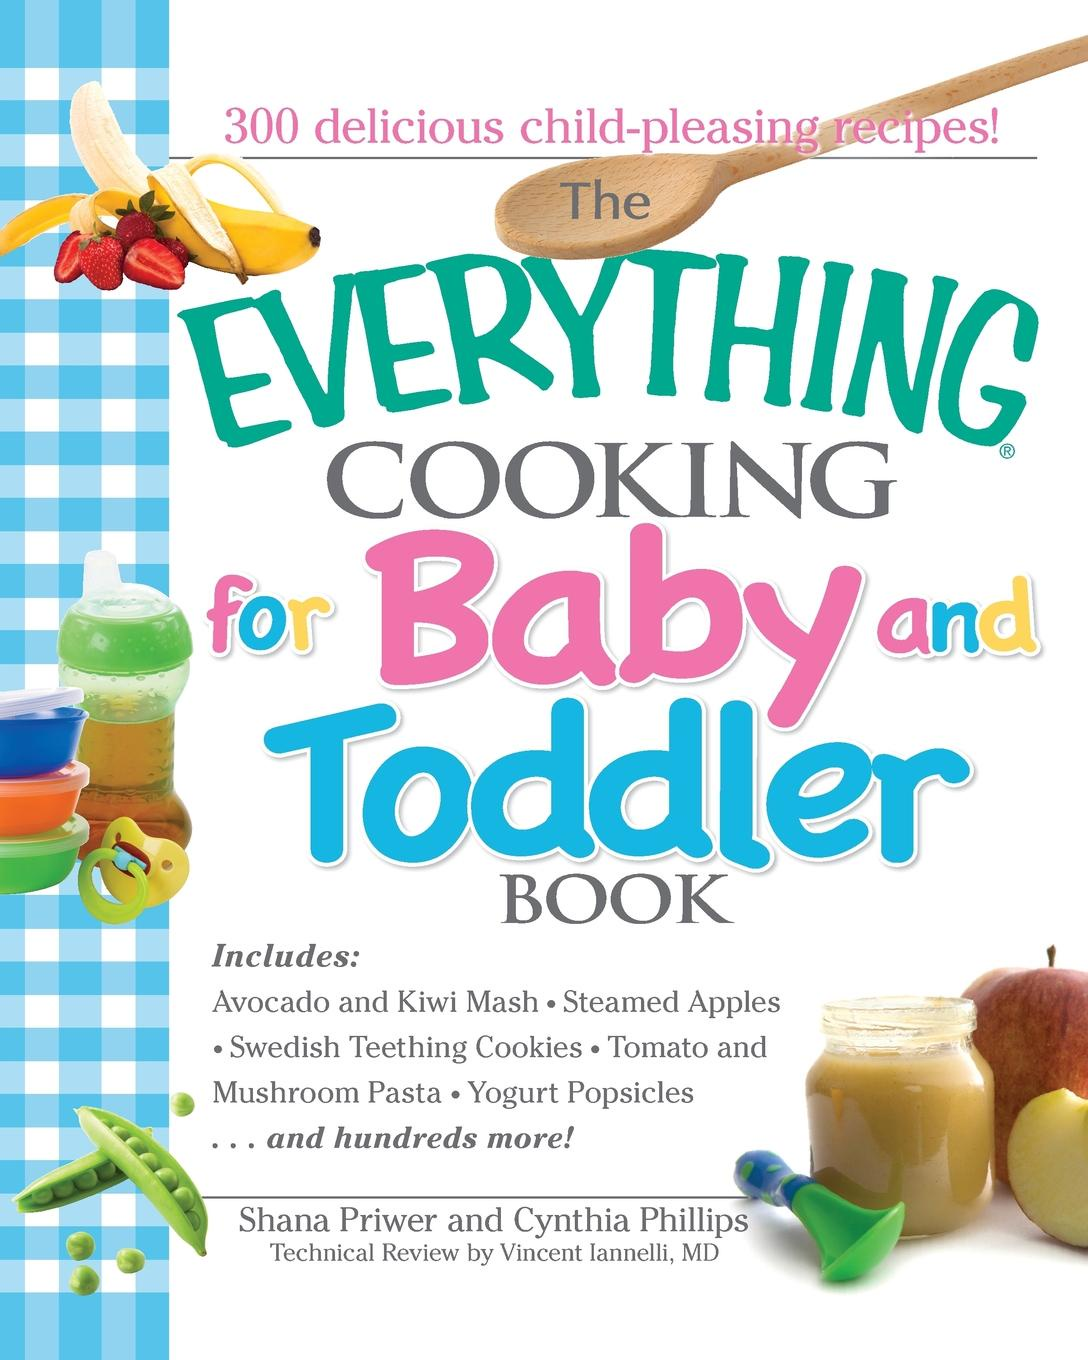 Shana Priwer, Cynthia Phillips The Everything Cooking for Baby and Toddler Book. 300 Delicious, Easy Recipes to Get Your Child Off to a Healthy Start cocktails fancy and delicious recipes for all tastes